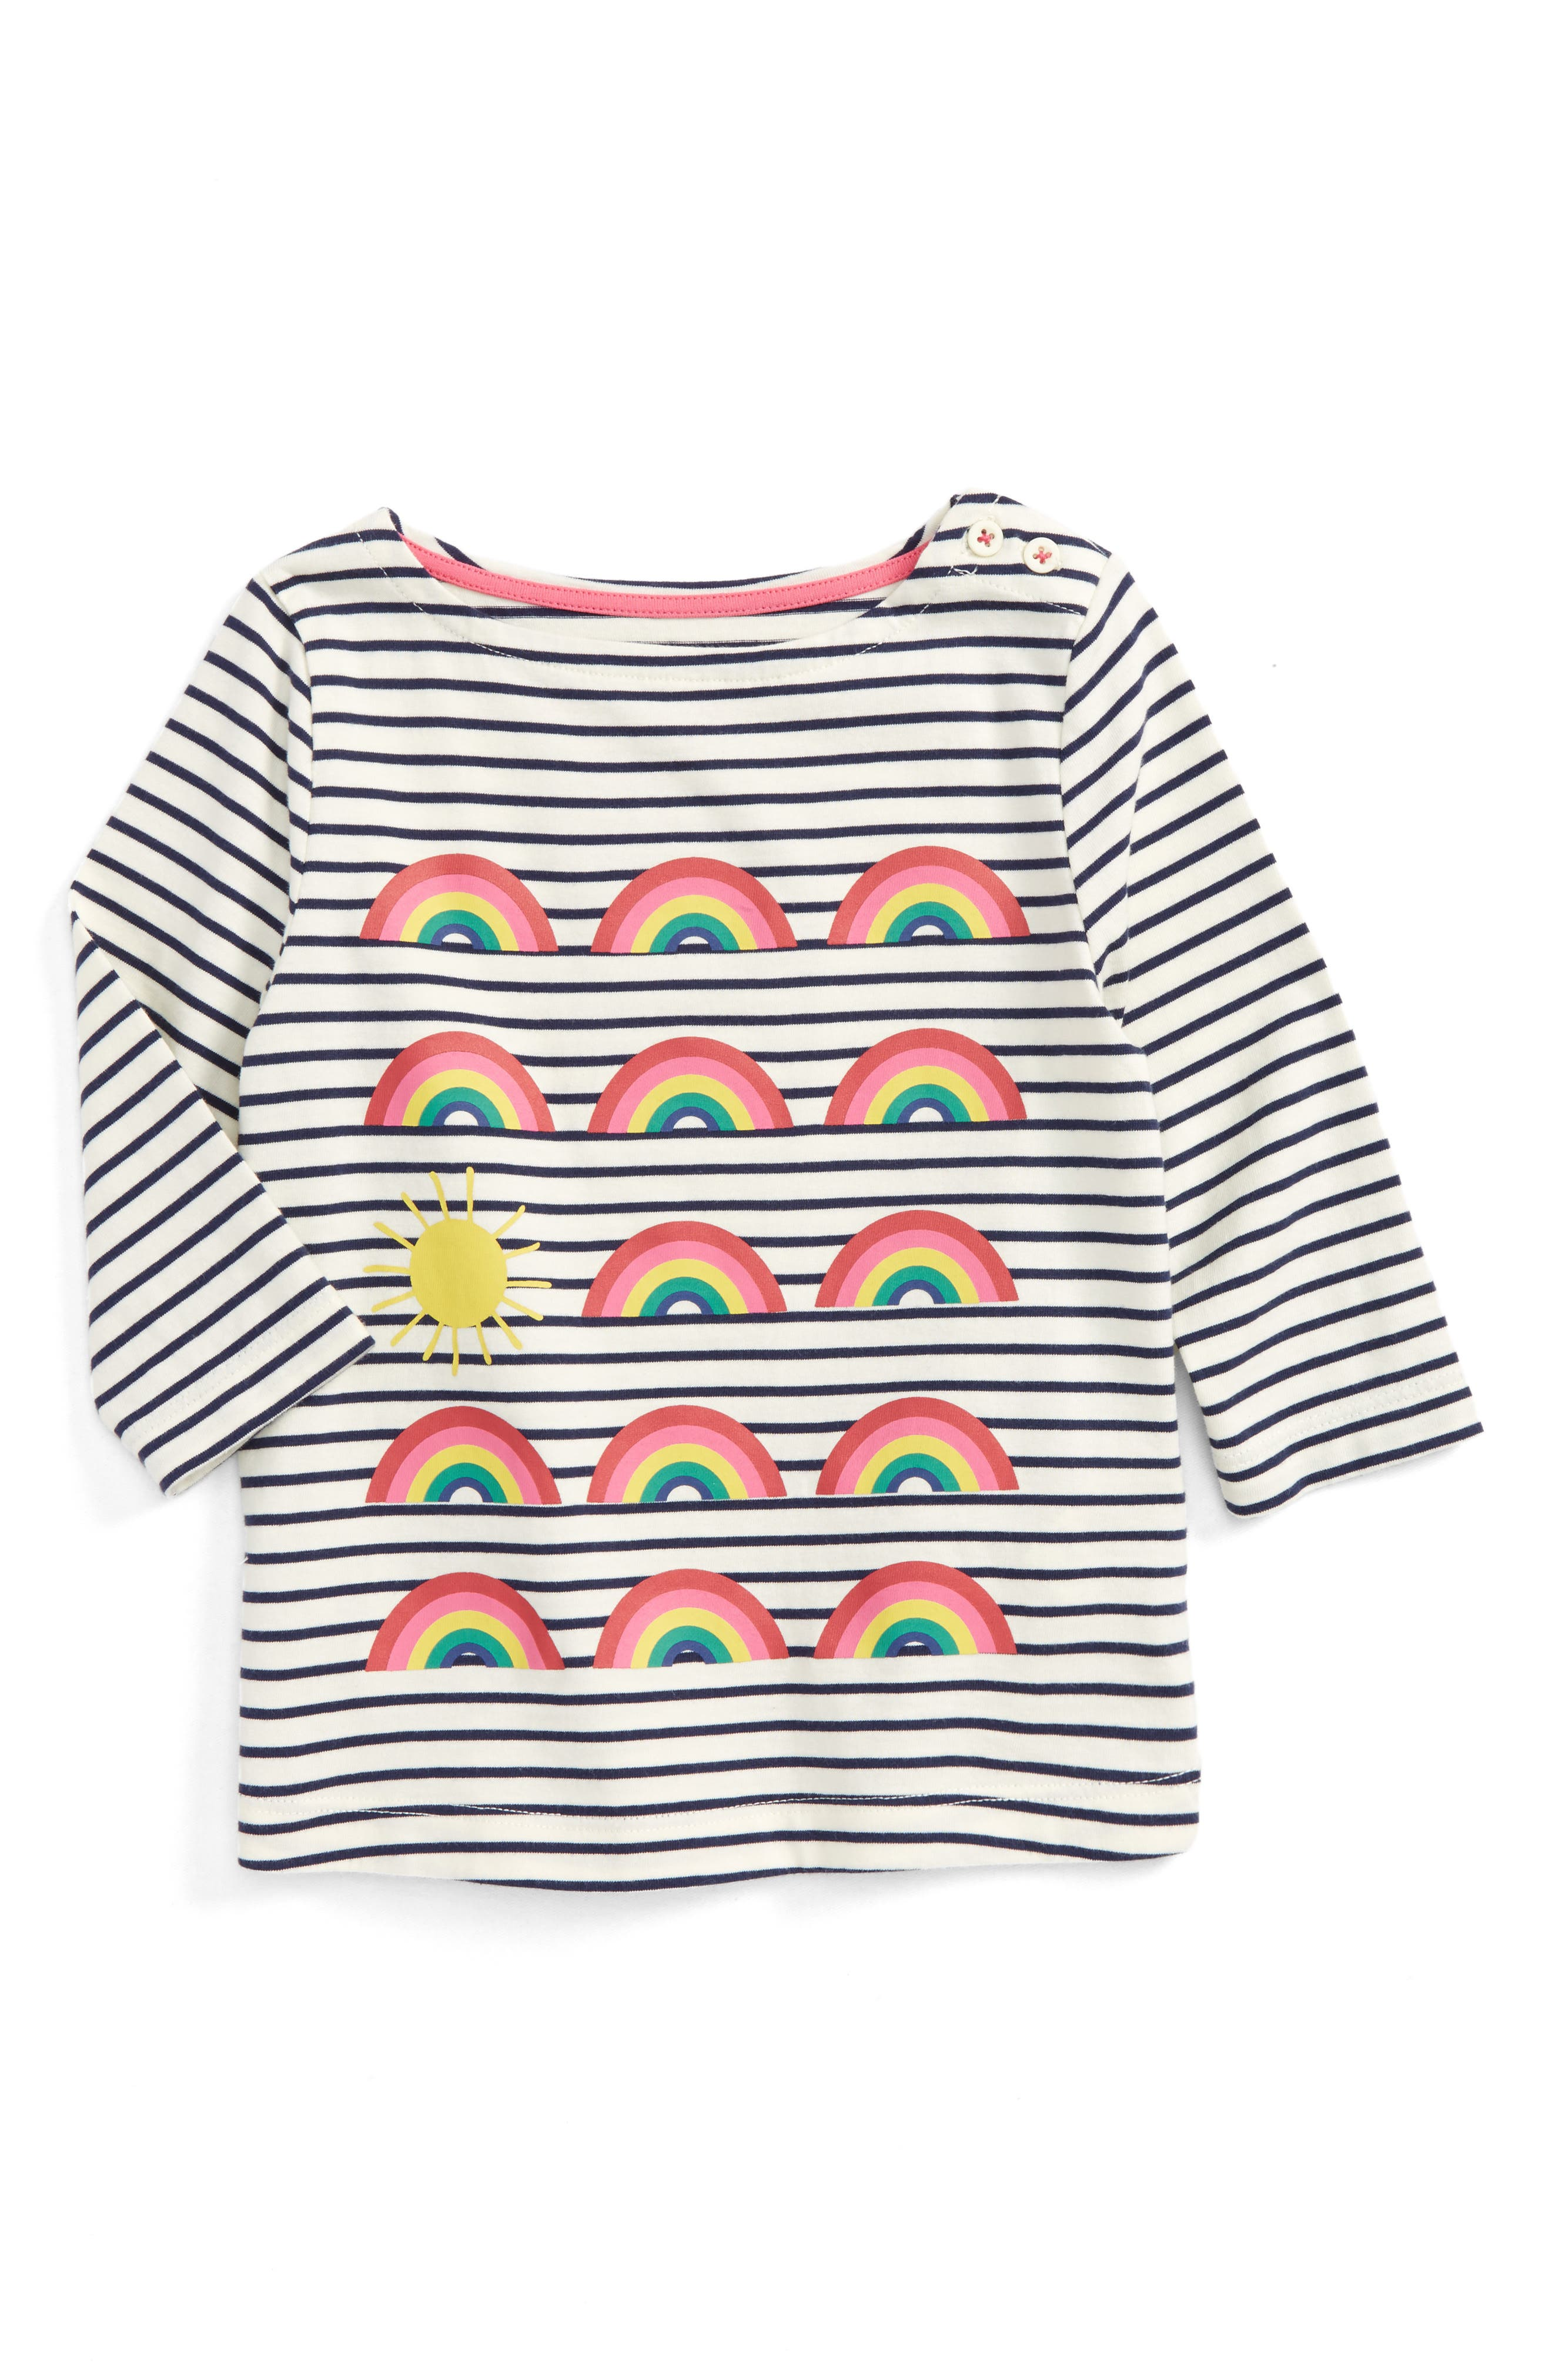 Odd One Out Graphic Tee,                         Main,                         color, 904